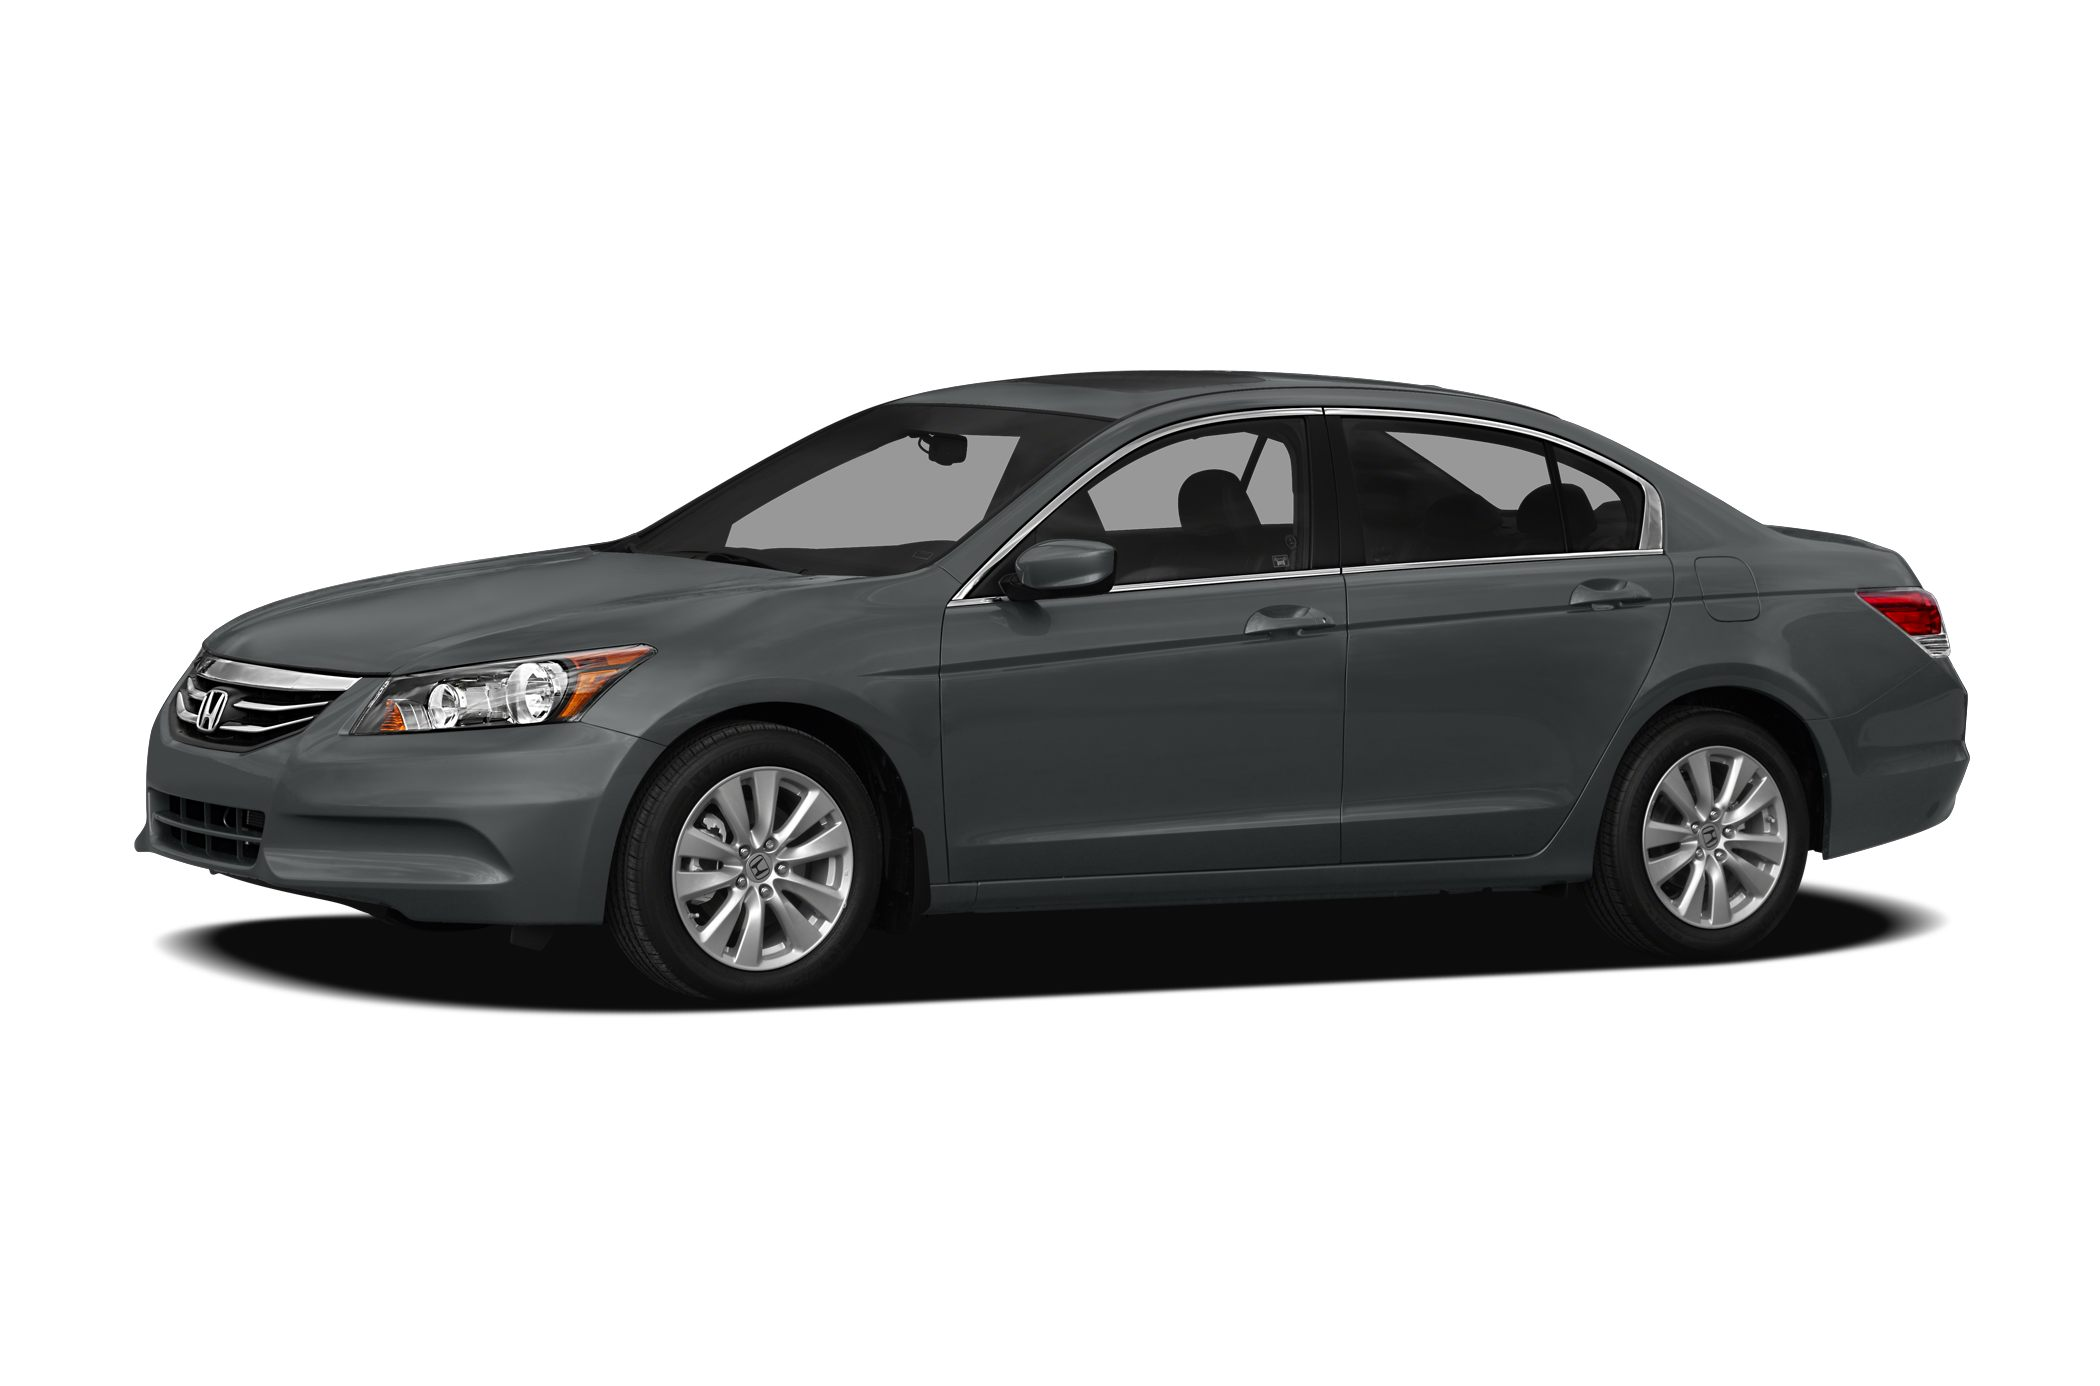 2012 Honda Accord EX-L Honda FEVER No games just business Fresh arrival More pictures coming s